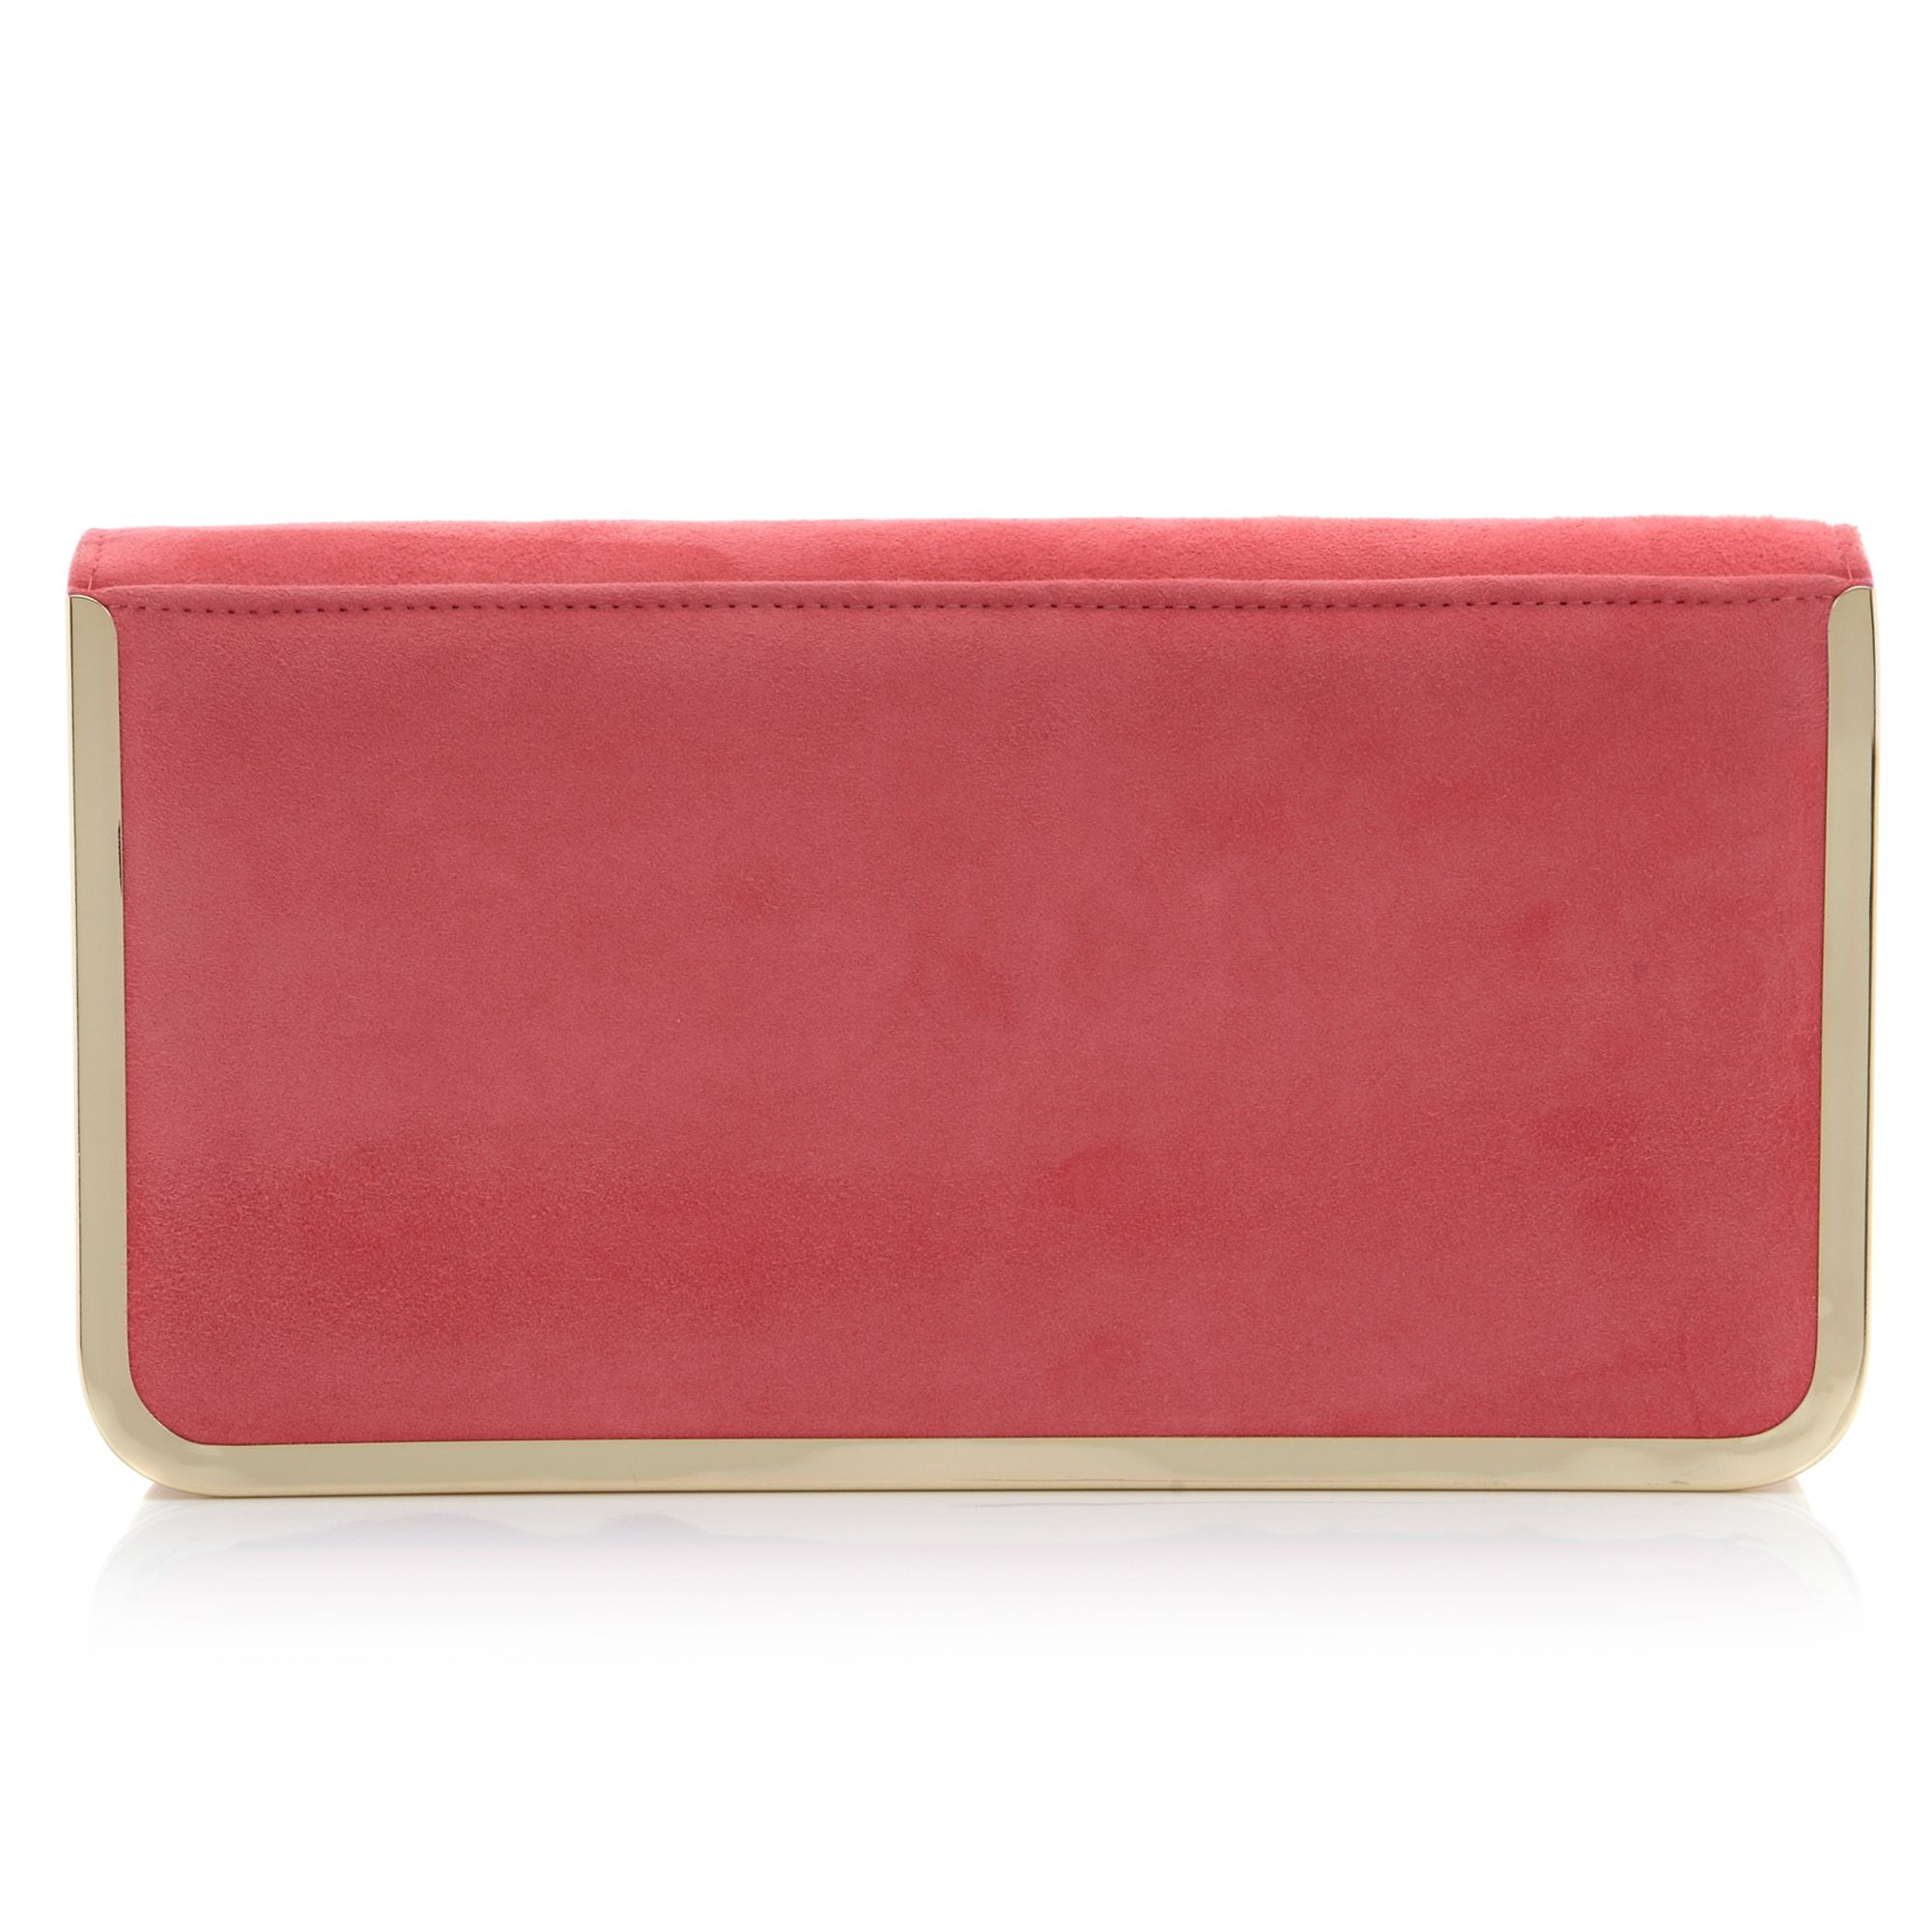 Bavy foldover metal detail clutch bag